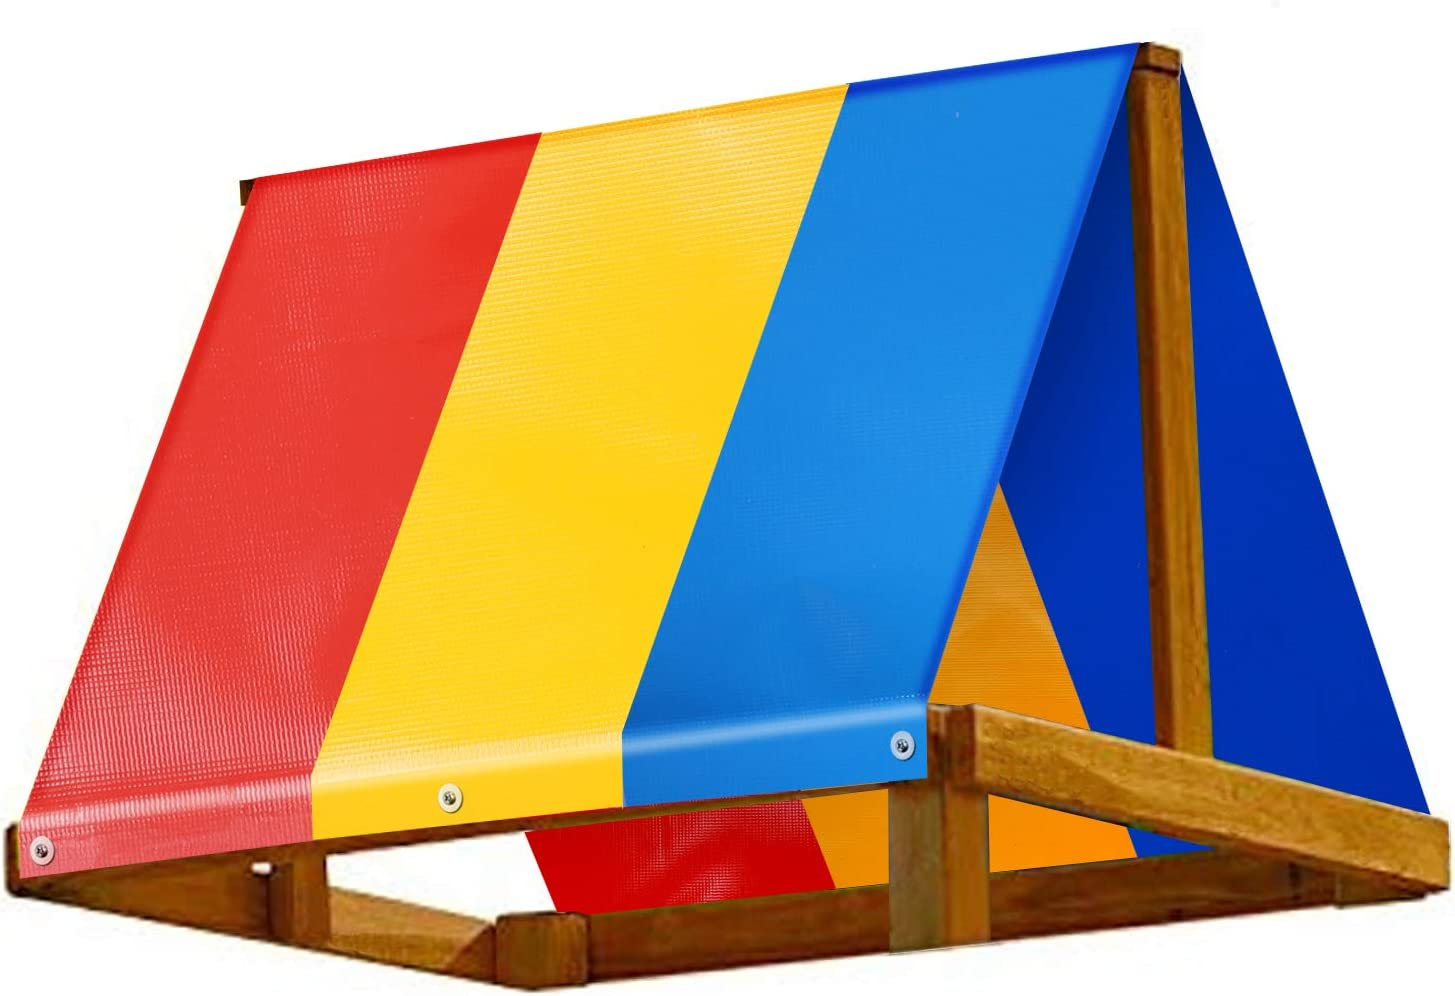 Waterproof /& UV Protection Colorful Playground Roof Kids Wooden Swingset Canvas Cover Replacement Multicolor Backyard Playset Canopy Replacement 52 /× 90 in Swing Set Replacement Tarp 52 /× 90